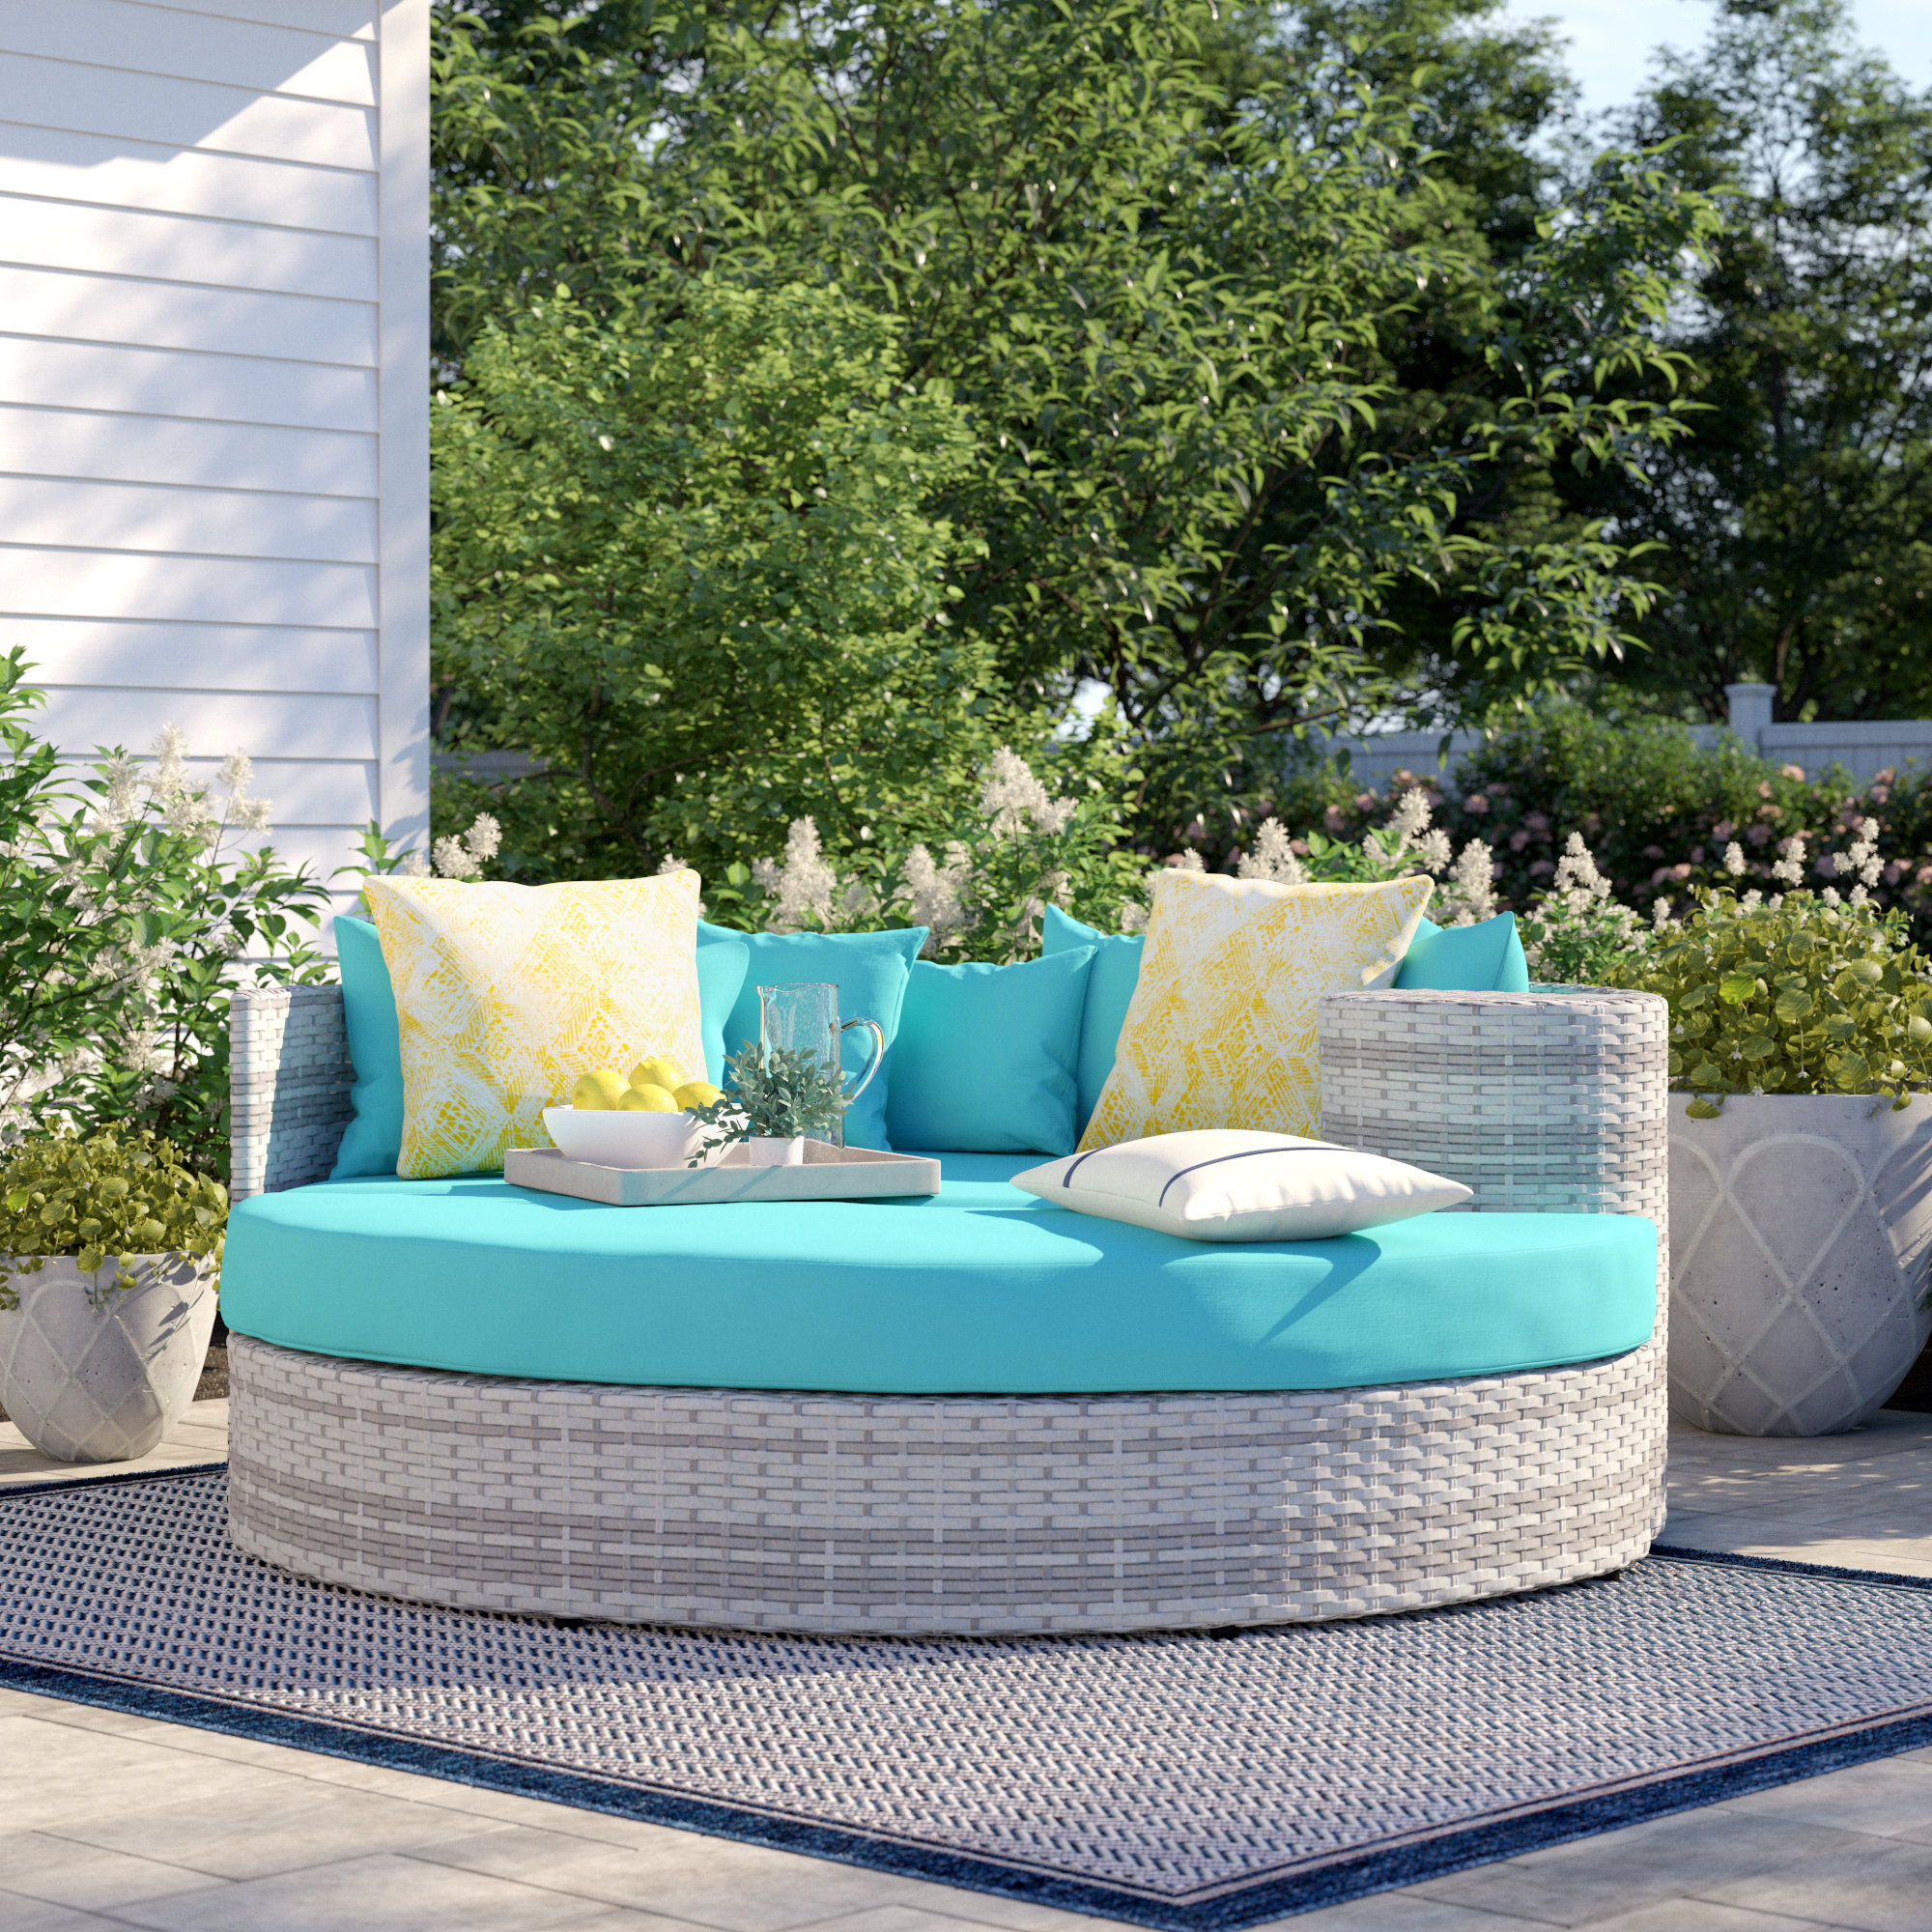 Sol 72 Outdoor Falmouth Patio Daybed With Cushions & Reviews Pertaining To Most Current Lammers Outdoor Wicker Daybeds With Cushions (View 19 of 20)